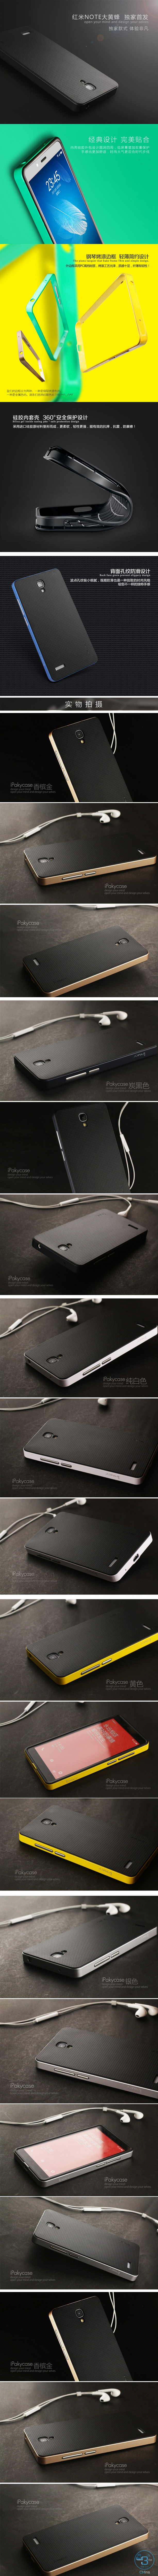 xiaomi redmi note ipaky back cover(2)